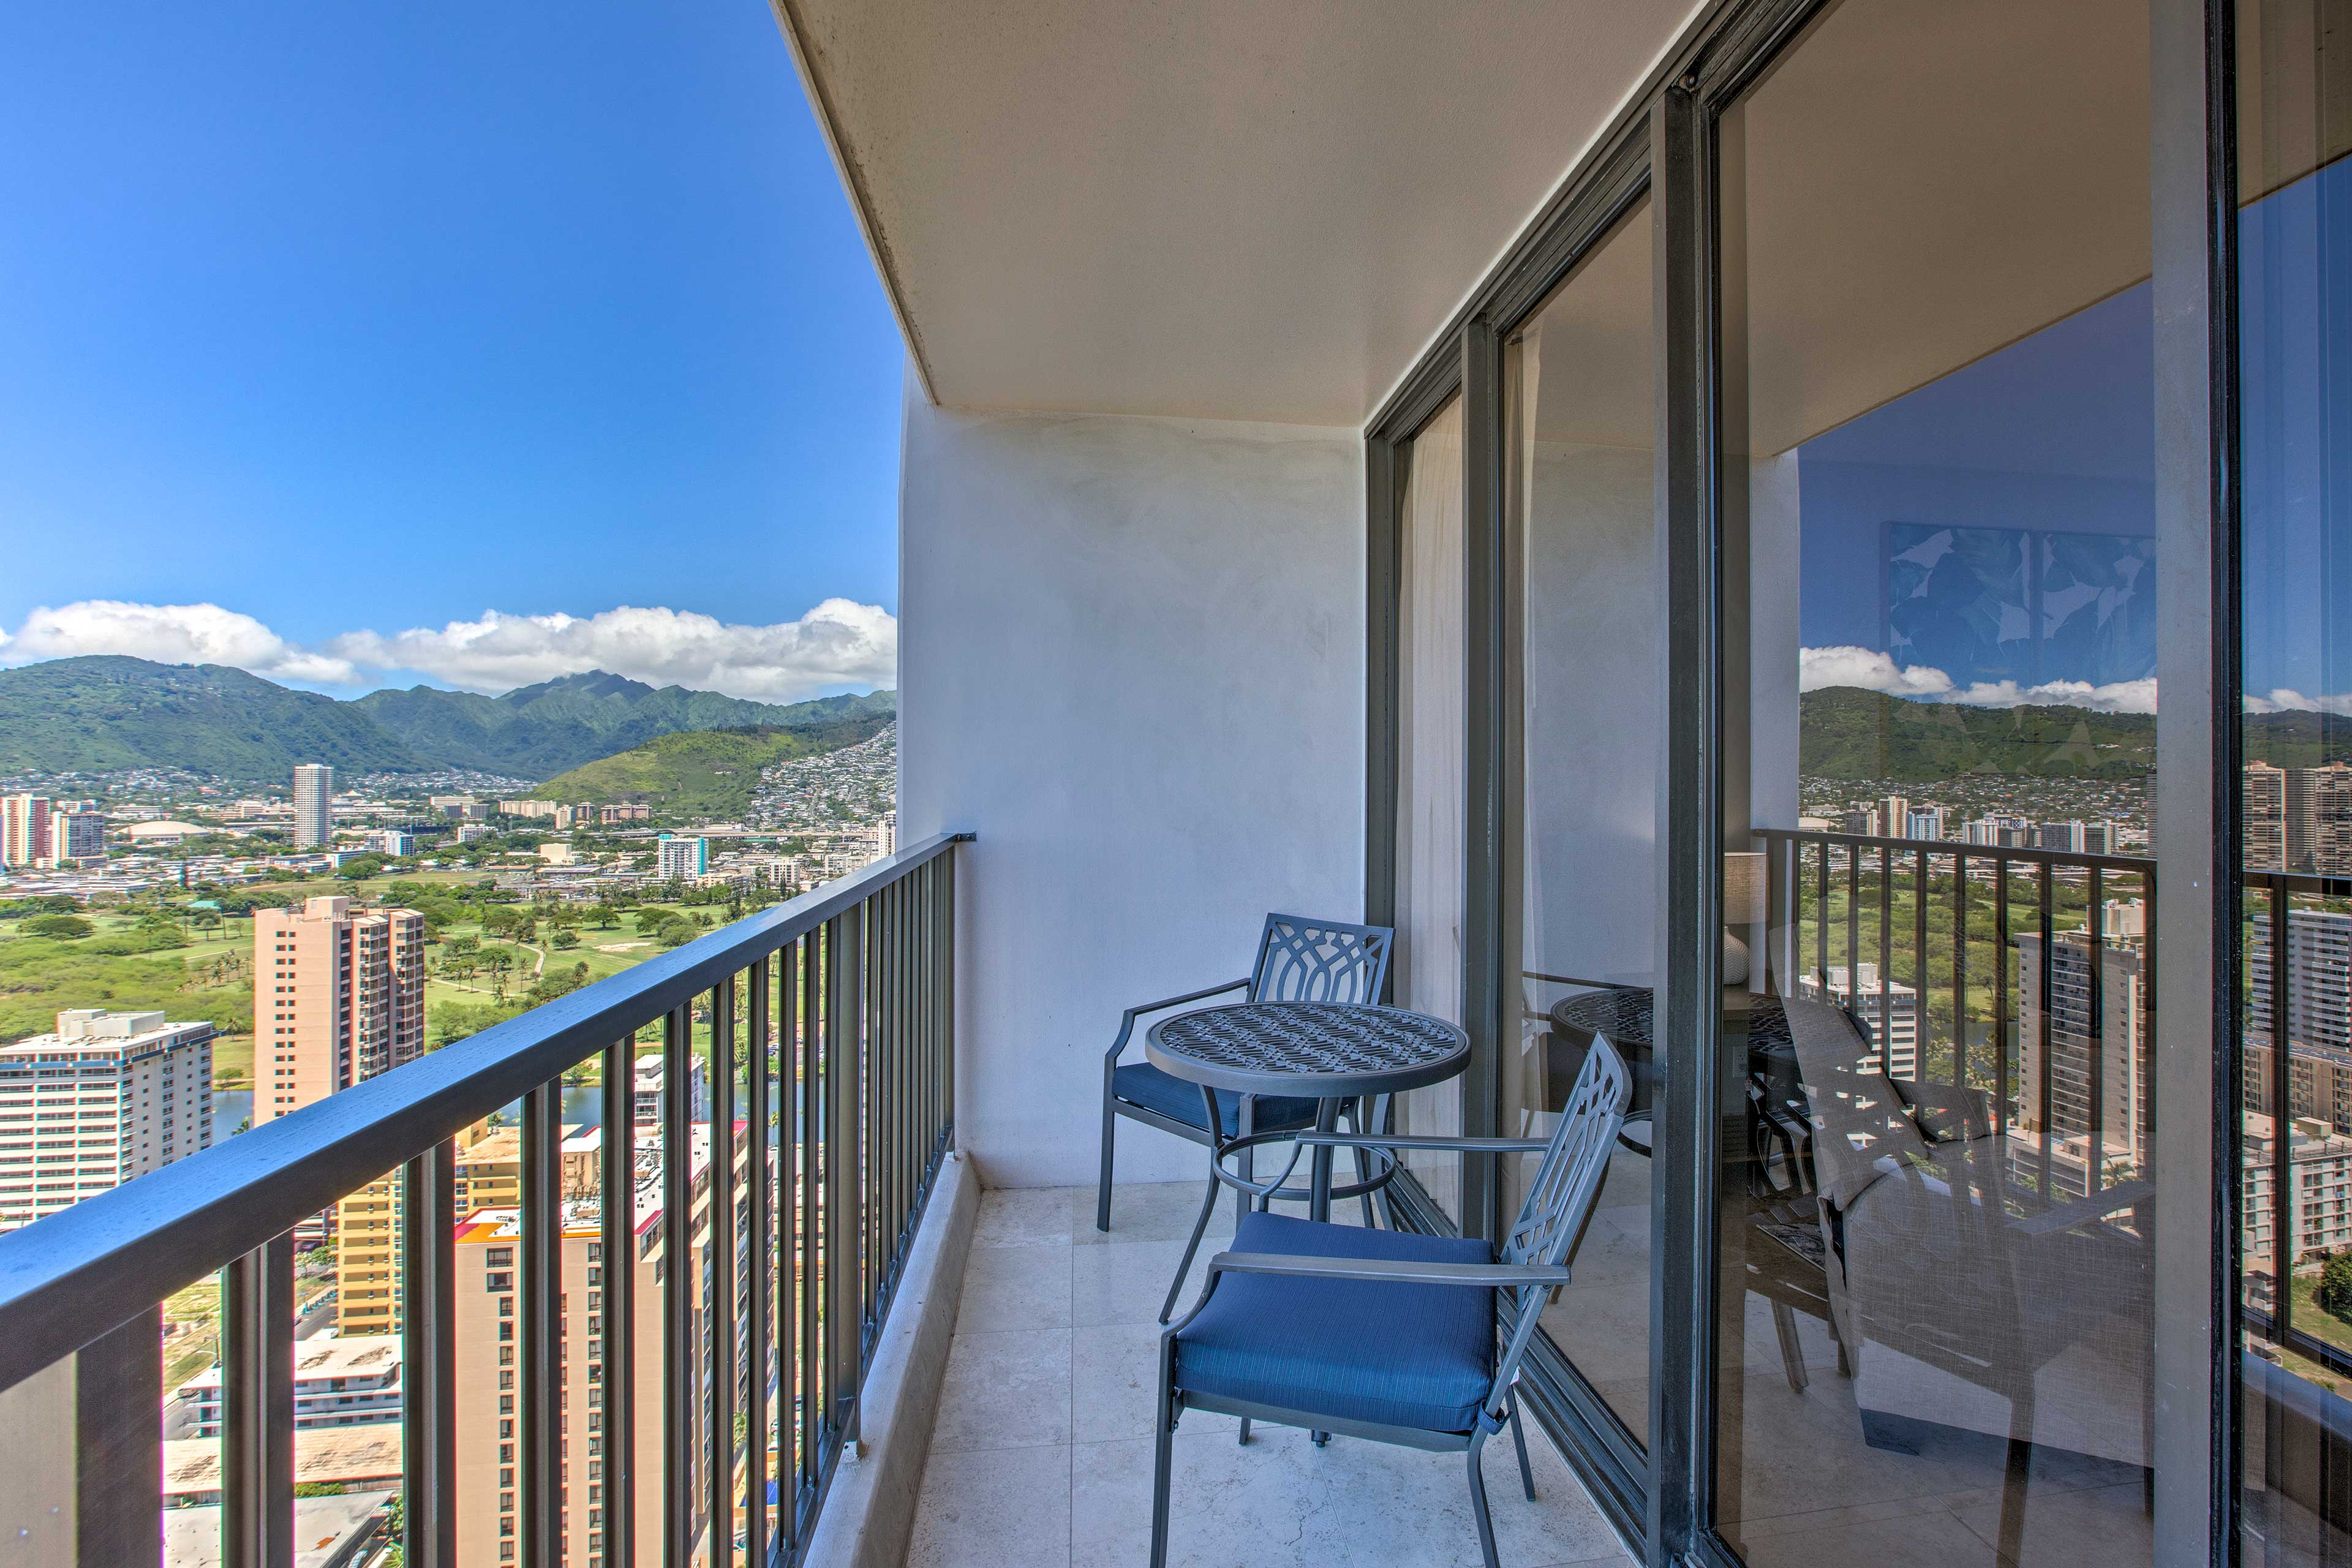 Kick back, relax and enjoy the sweeping scenery from your balcony.